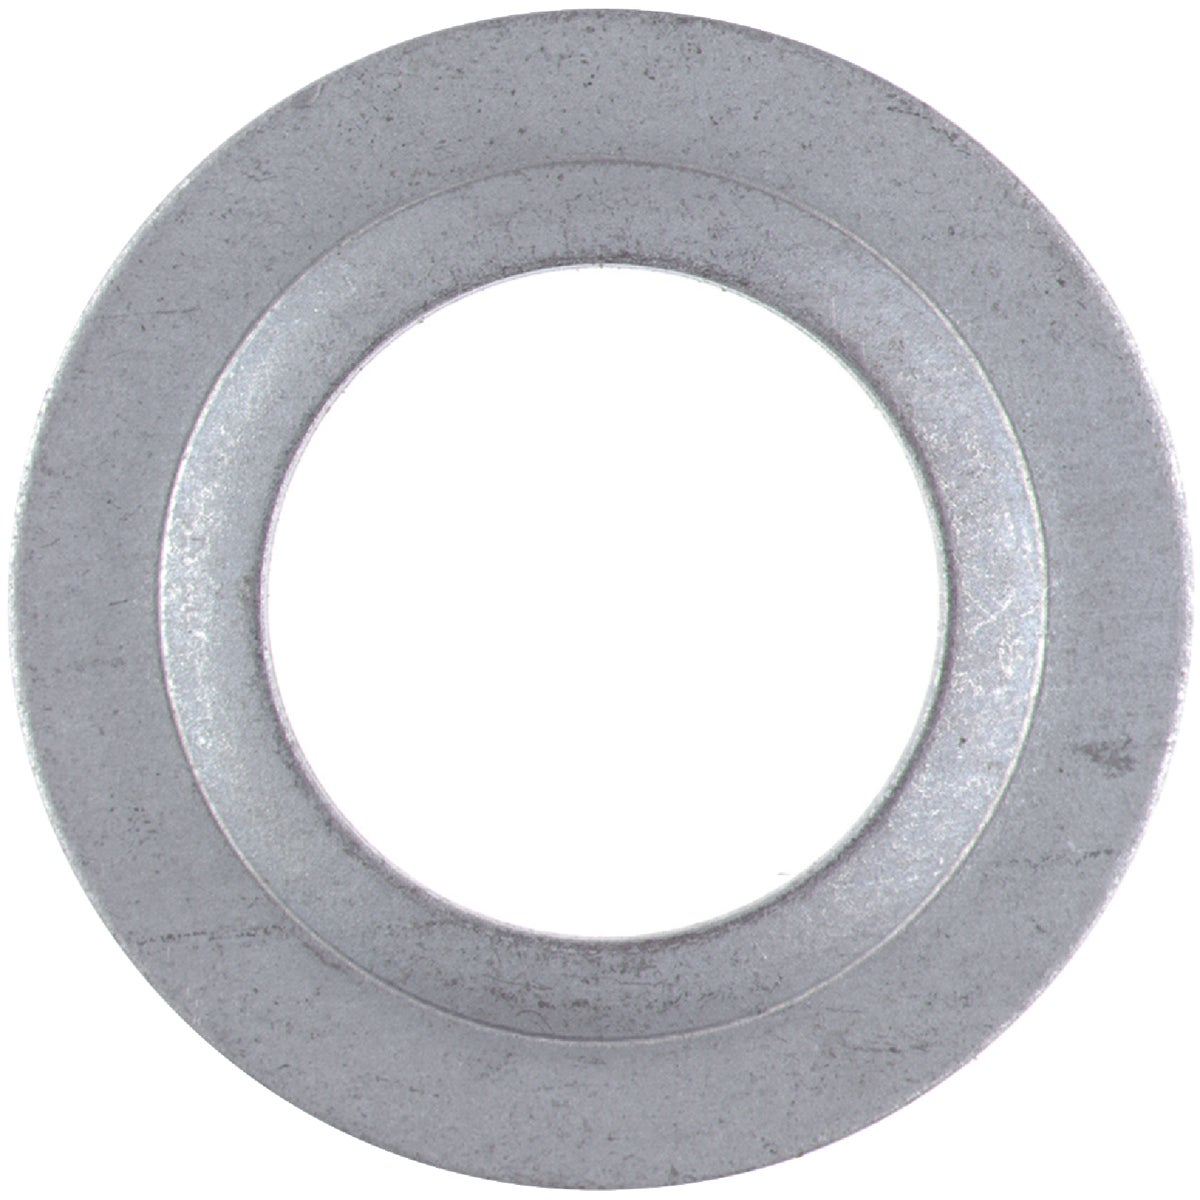 1X1/2 REDUCE WASHER - WA1314 by Thomas & Betts